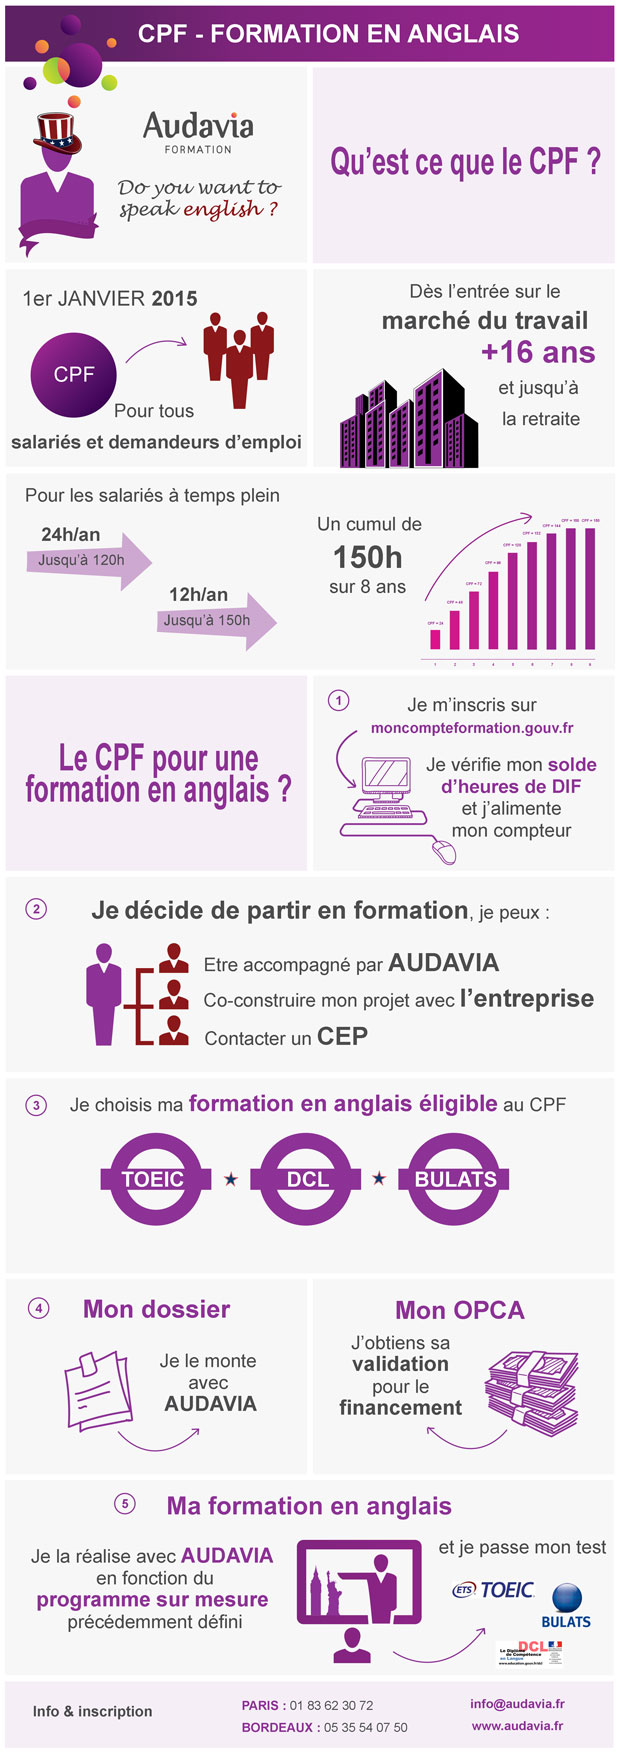 CPF-Formation-en-anglais-BULATS-DCL-TOEIC